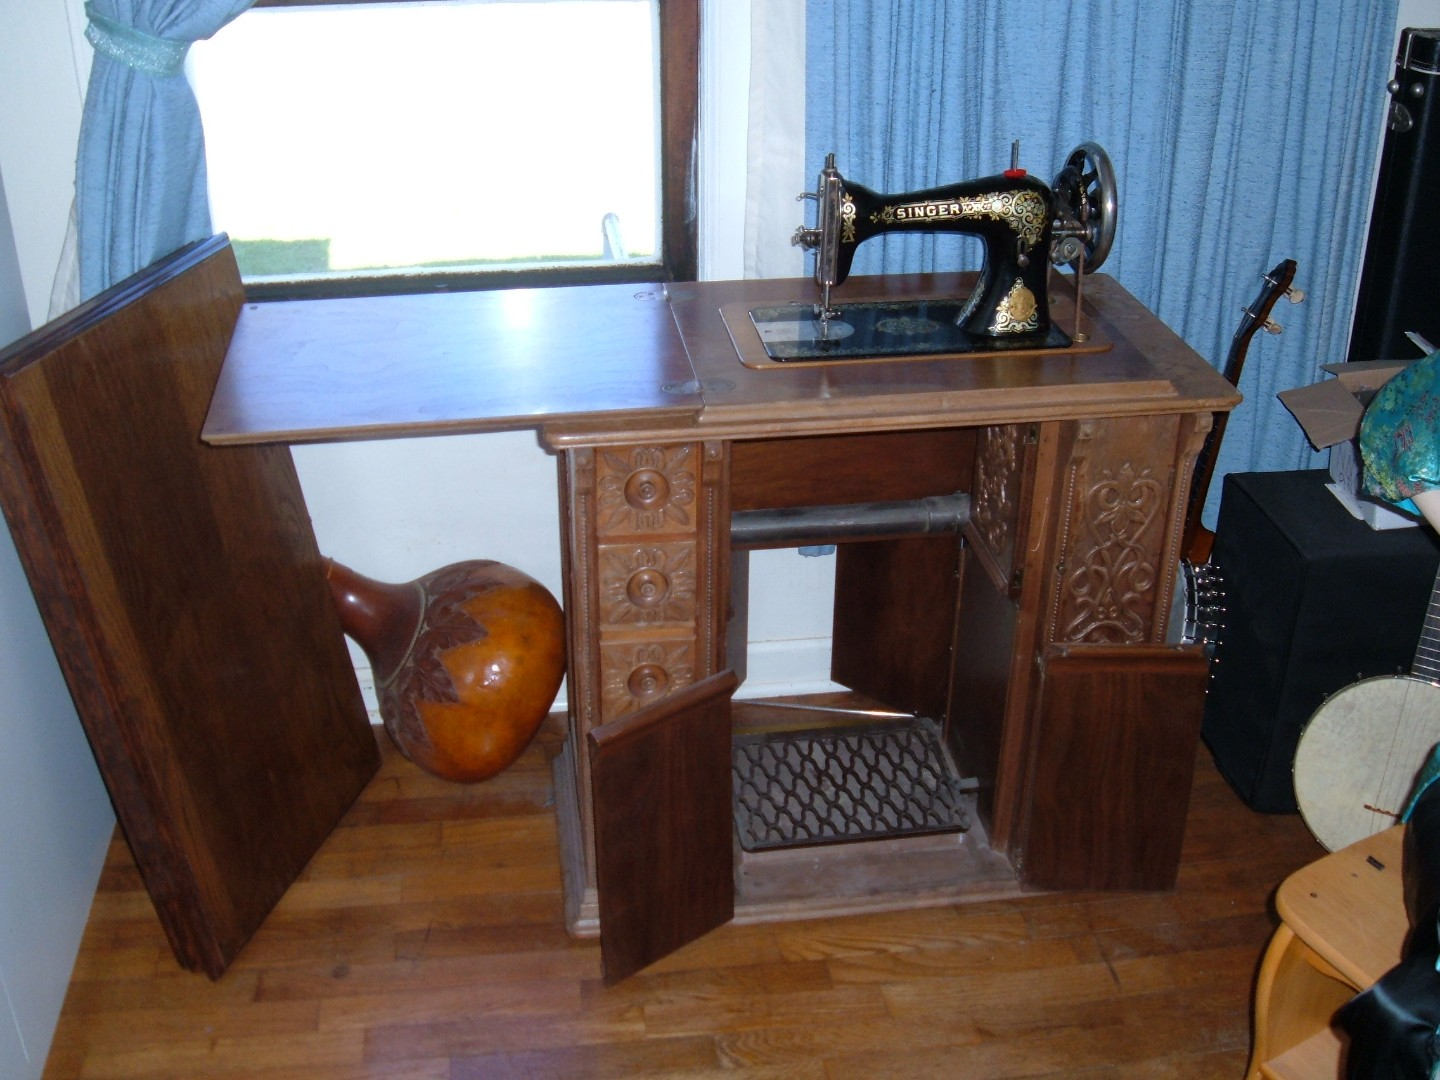 Singer Style 32 cabinet with home made desk top cover 2.jpg